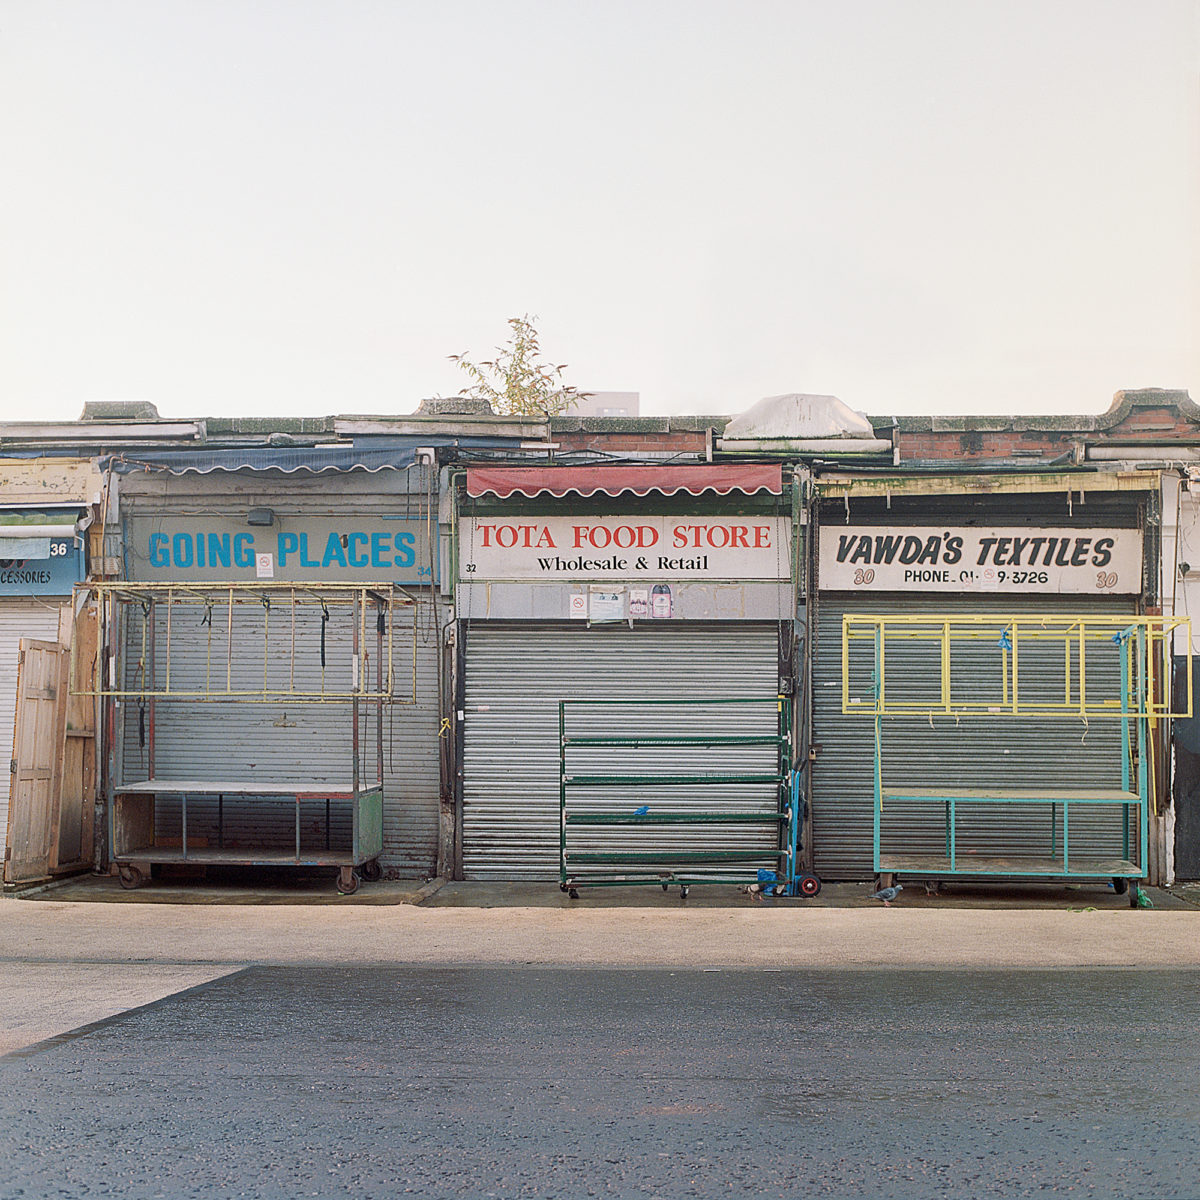 Ridley Road 2011